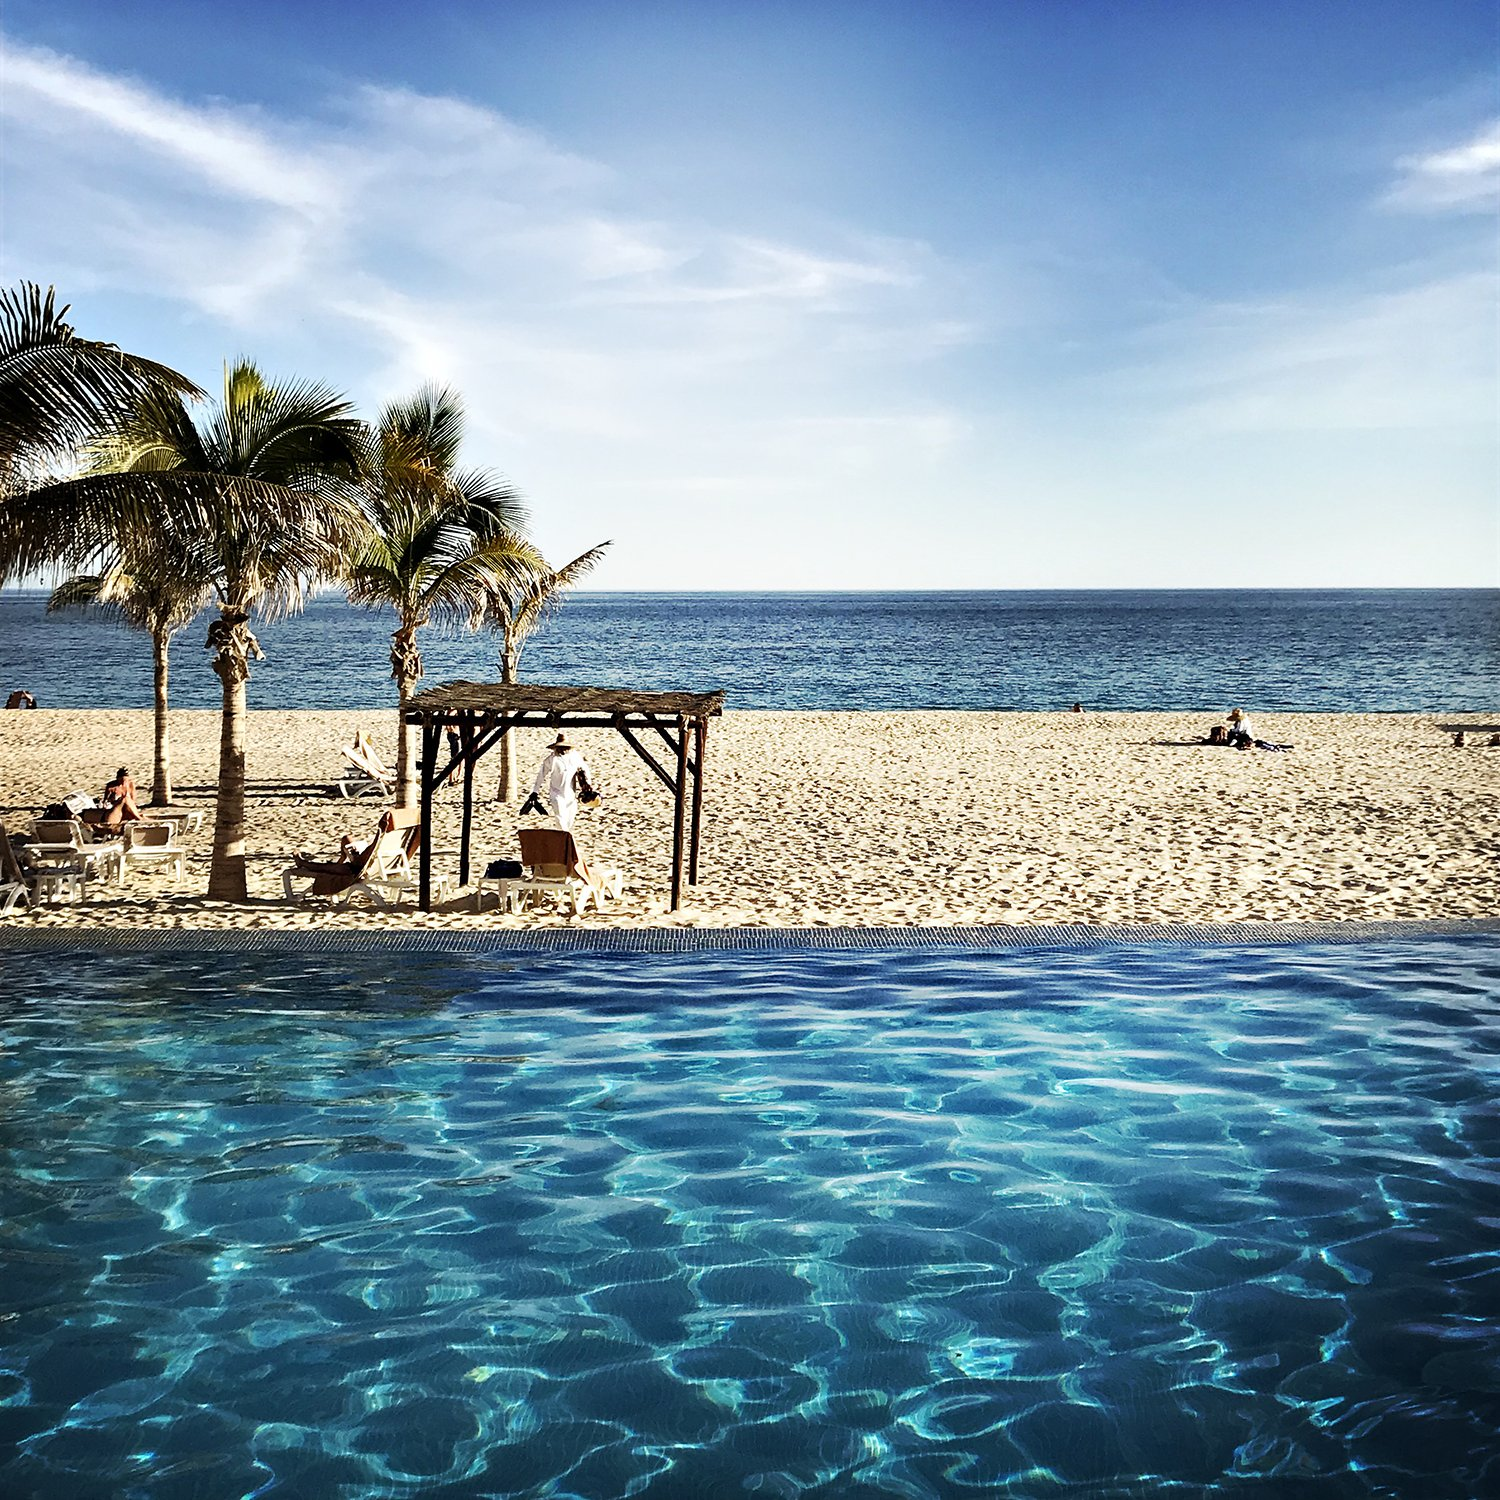 baja, ocean, blue, waves, water, wet, sand, cabana, palm trees, ripples